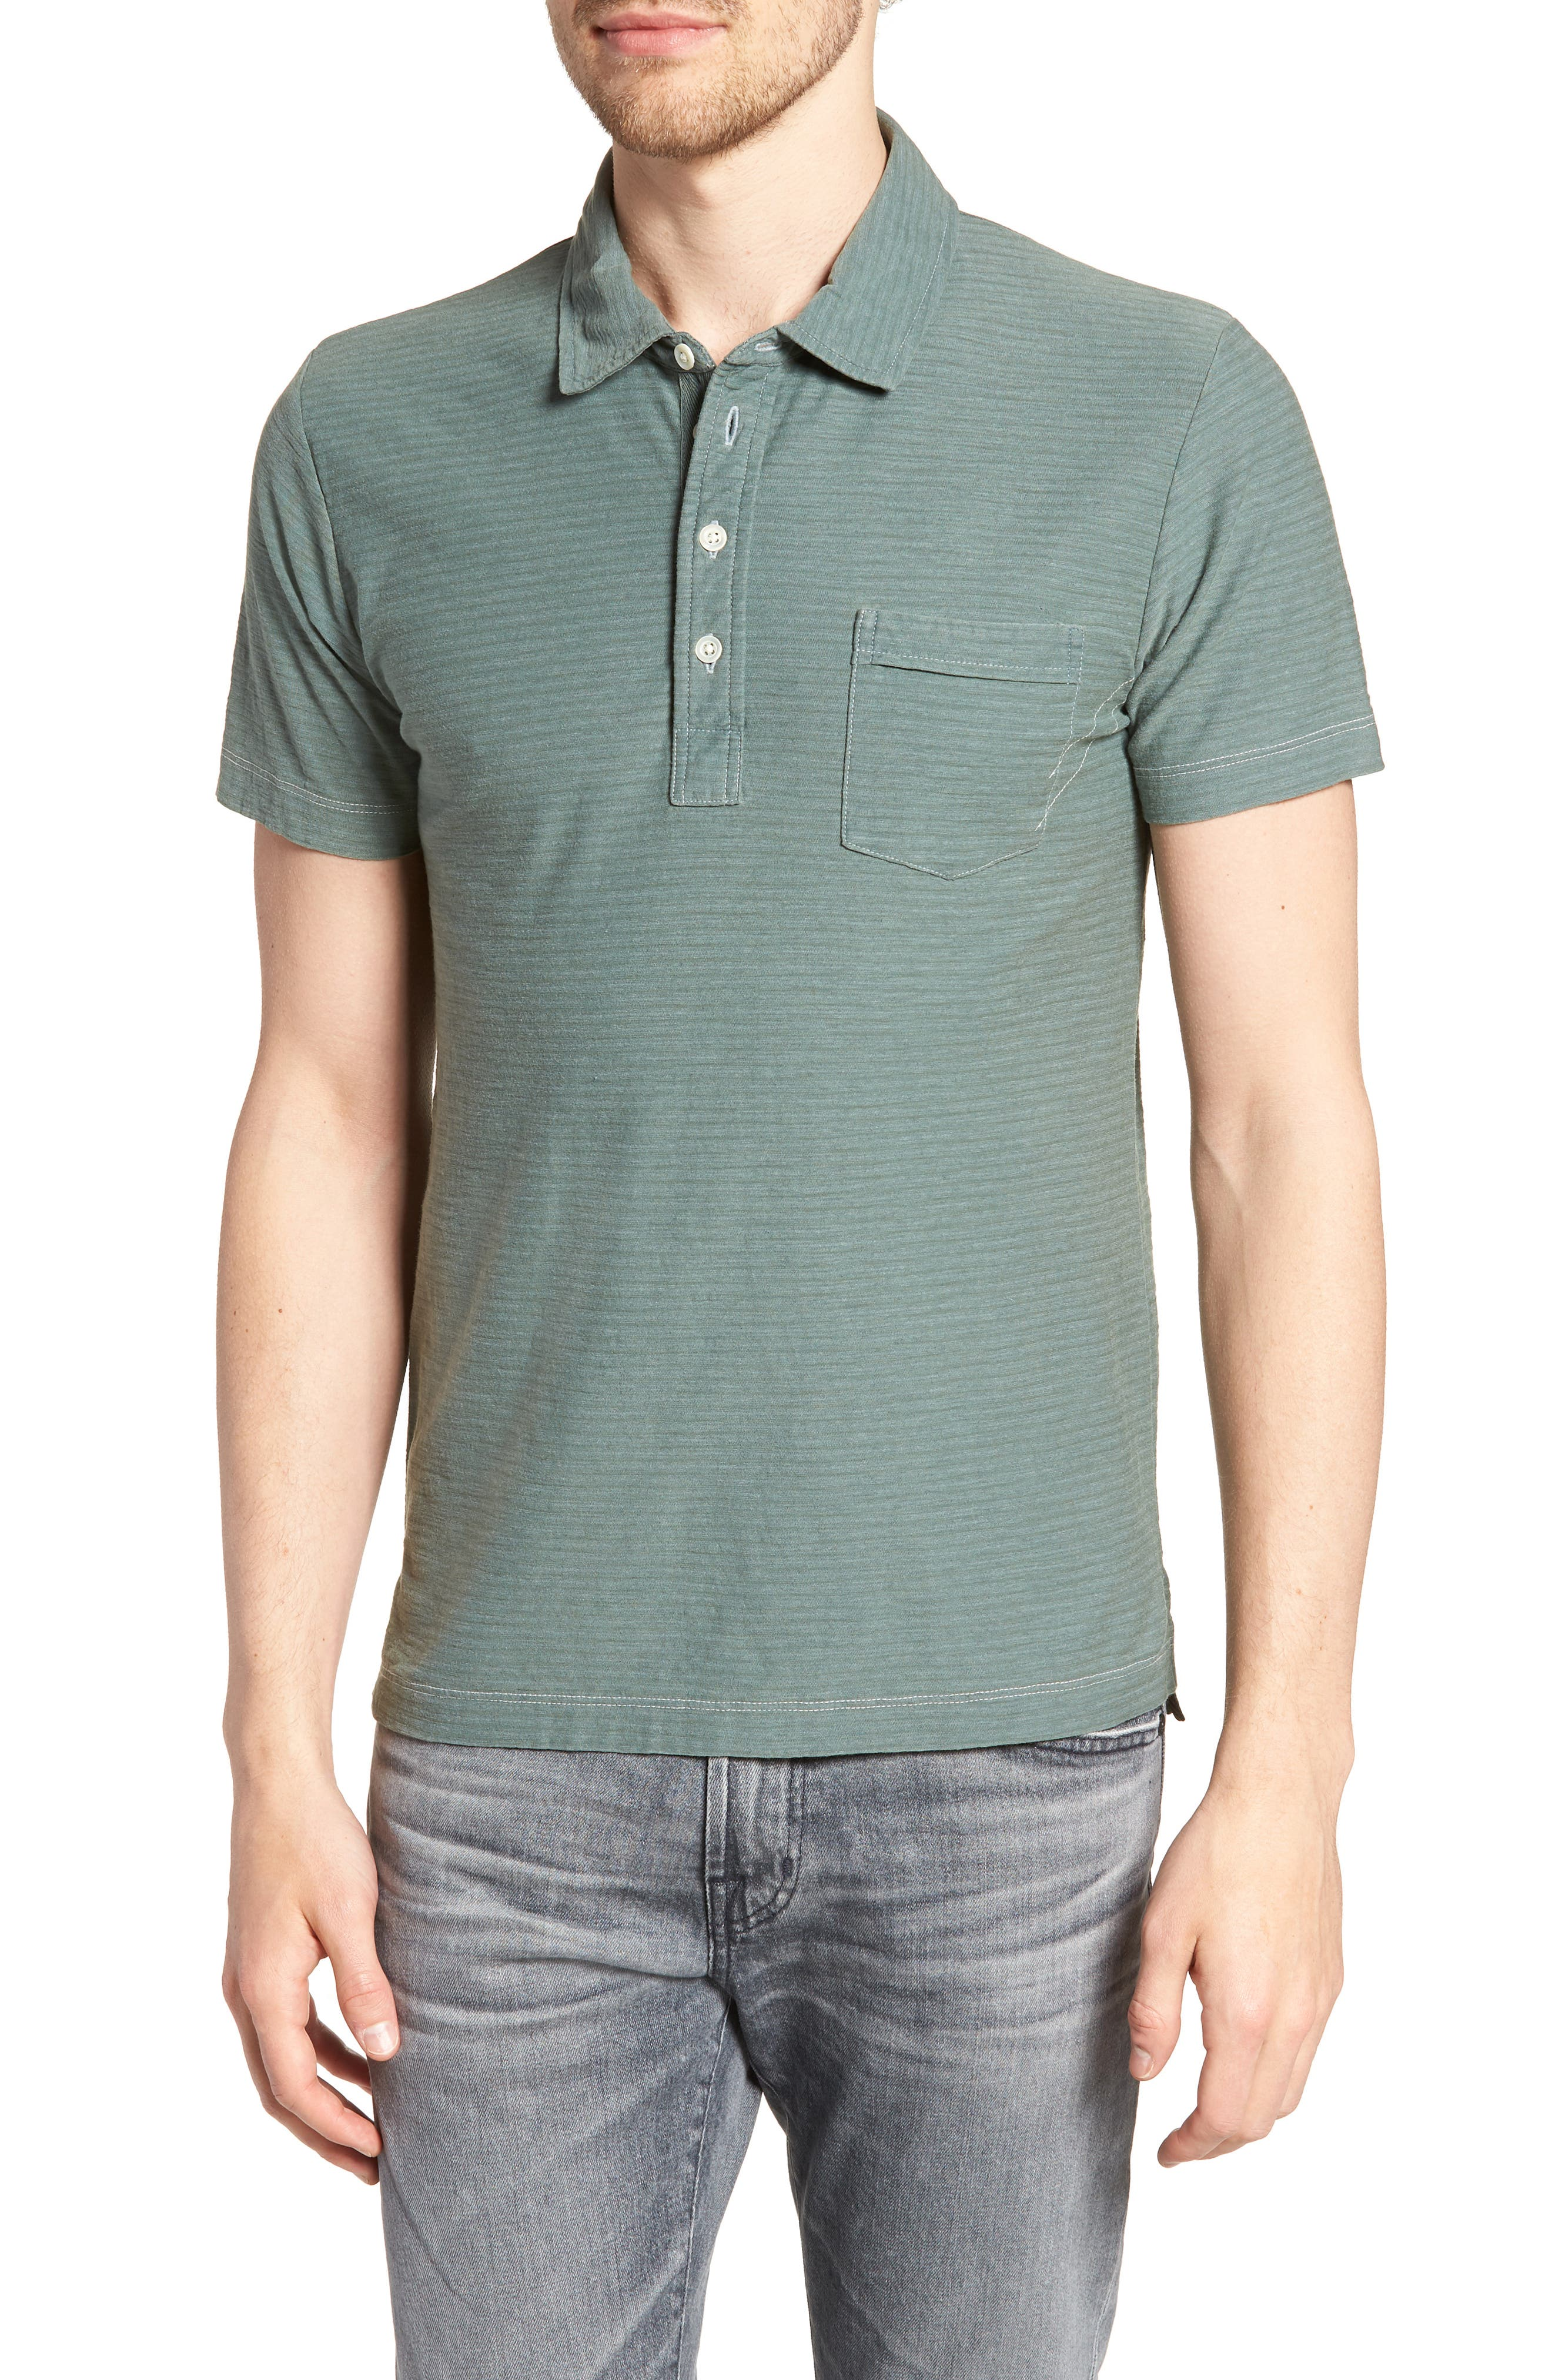 Pensacola Cotton Blend Polo Shirt,                             Main thumbnail 1, color,                             Sage